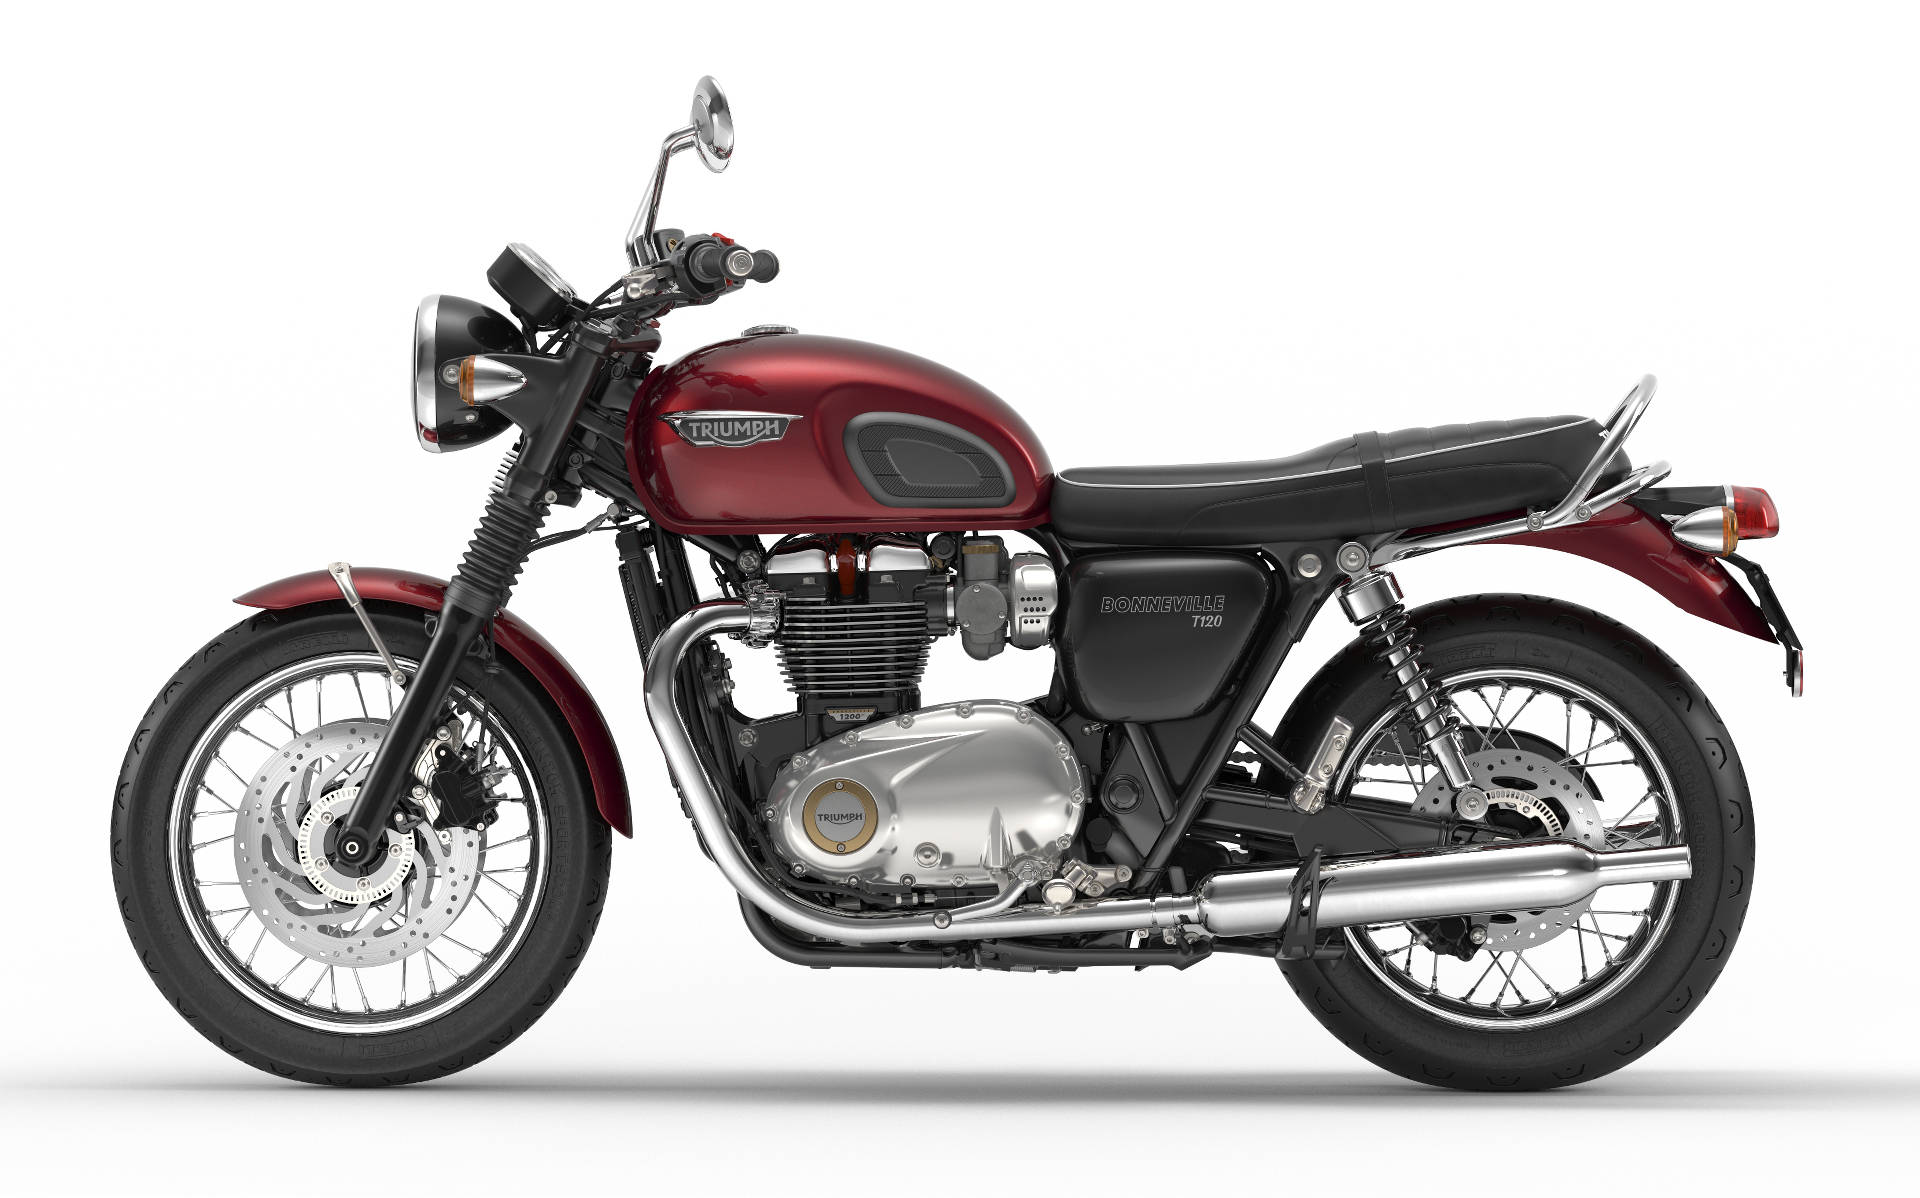 Triumph Unveils New Liquid-Cooled Bonneville Family with 1200cc and